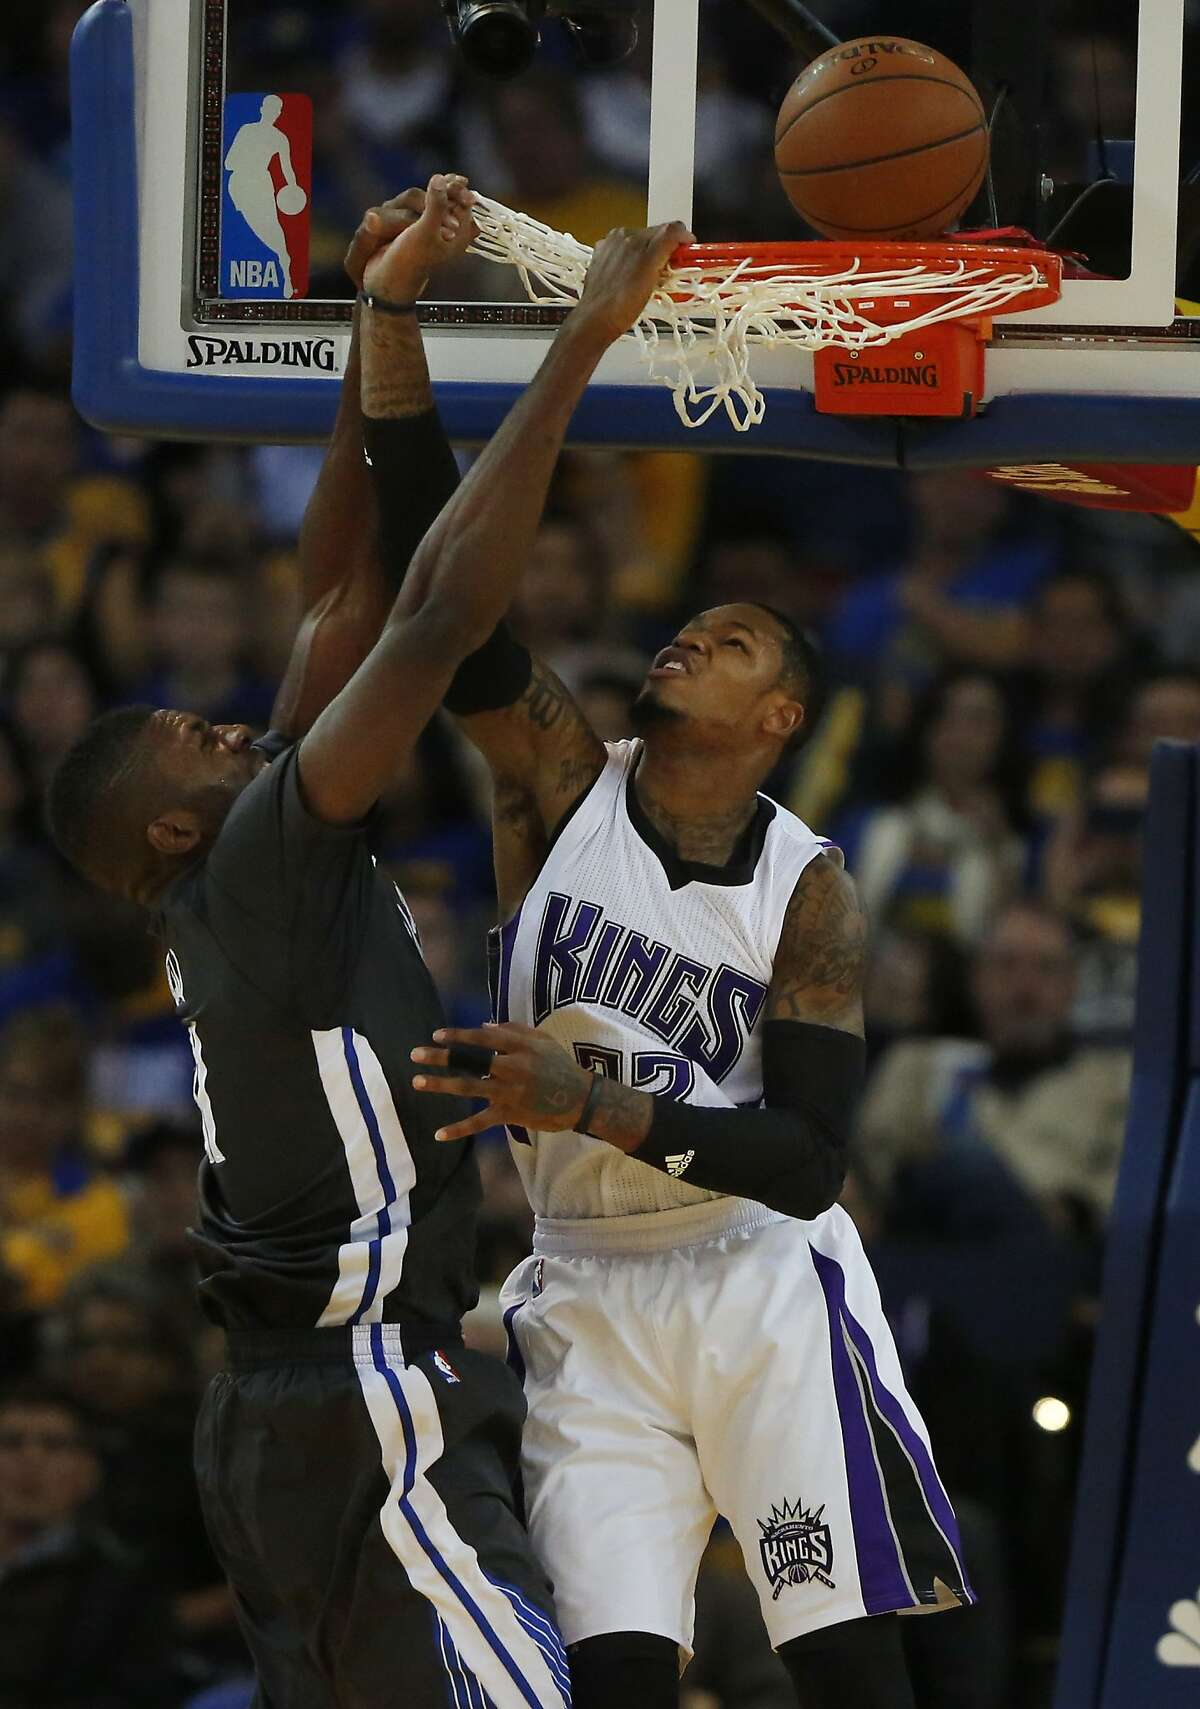 Warriors' Festus Ezeli attempts a slam dunk as the Kings' Ben McLemore attempts a block during the Golden State Warriors vs. the Sacramento Kings game in Oracle Arena Nov. 28, 2015 in Oakland, Calif.